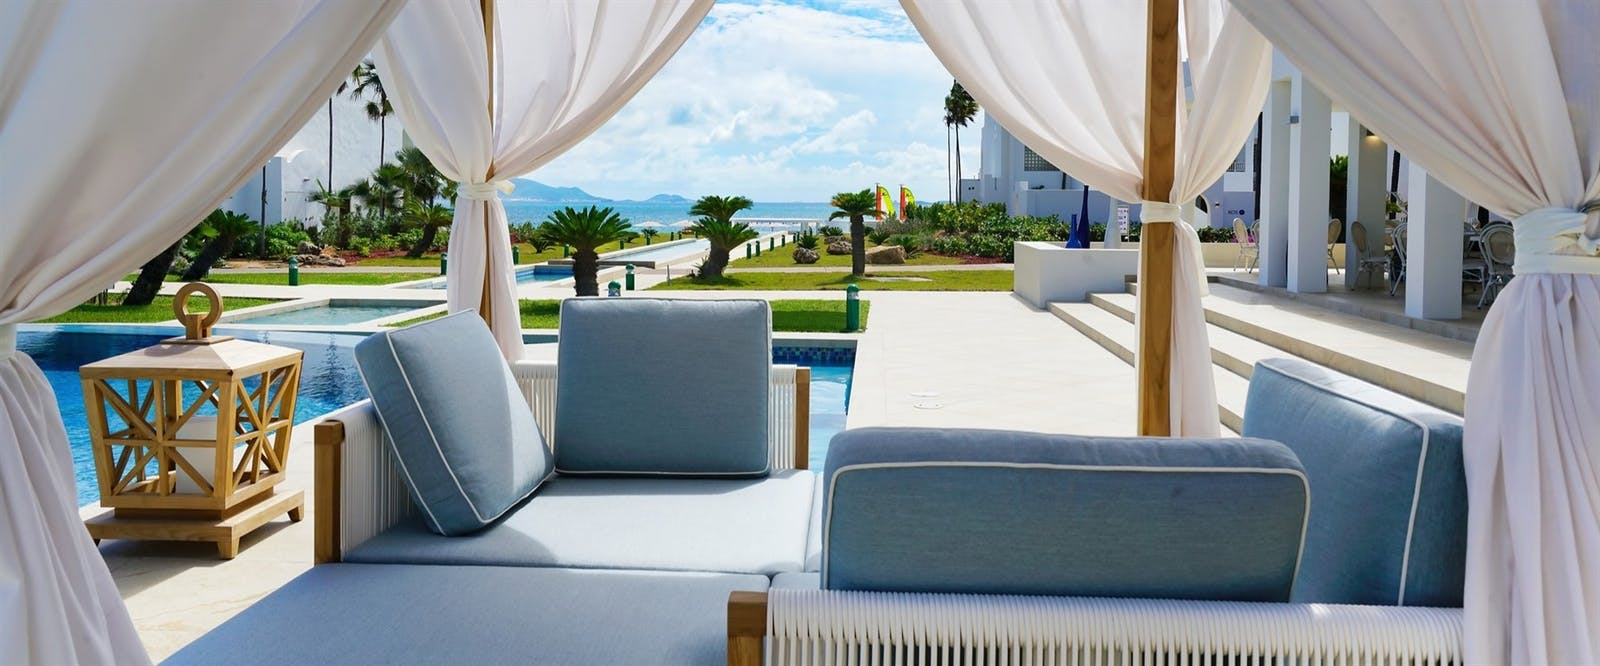 Poolside at CuisinArt Golf Resort & Spa, Anguilla